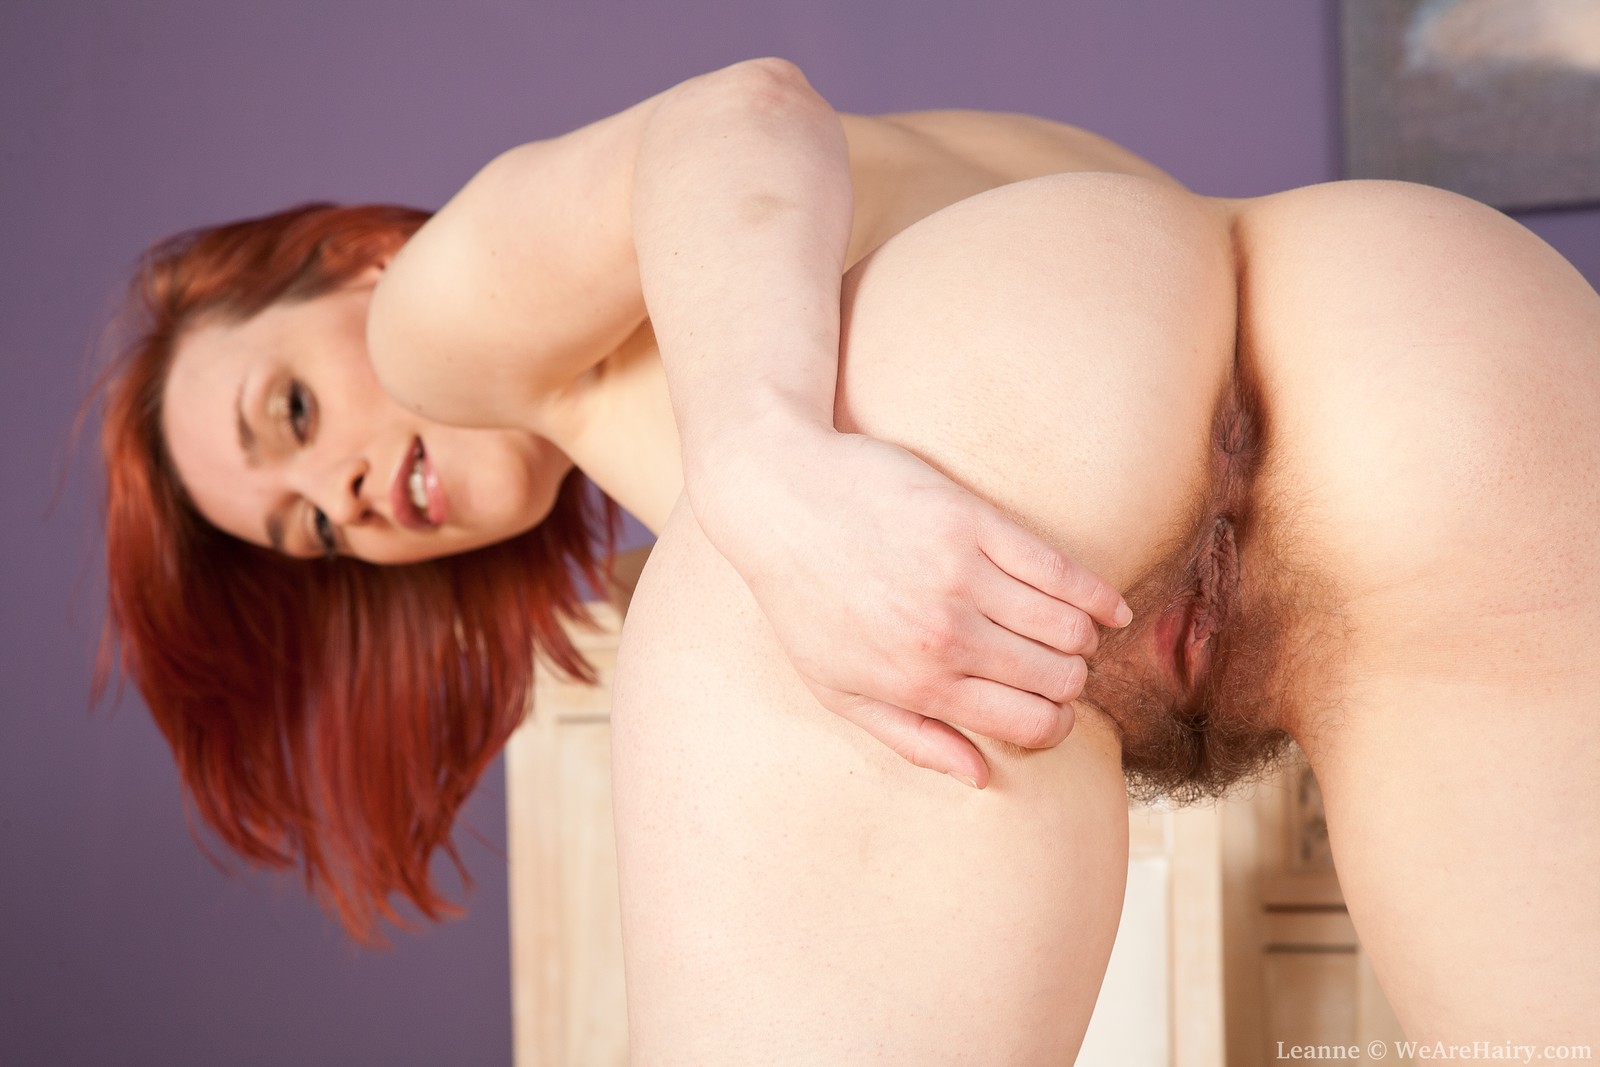 Hairy Bush Redhead Pussy What Here Ridiculous